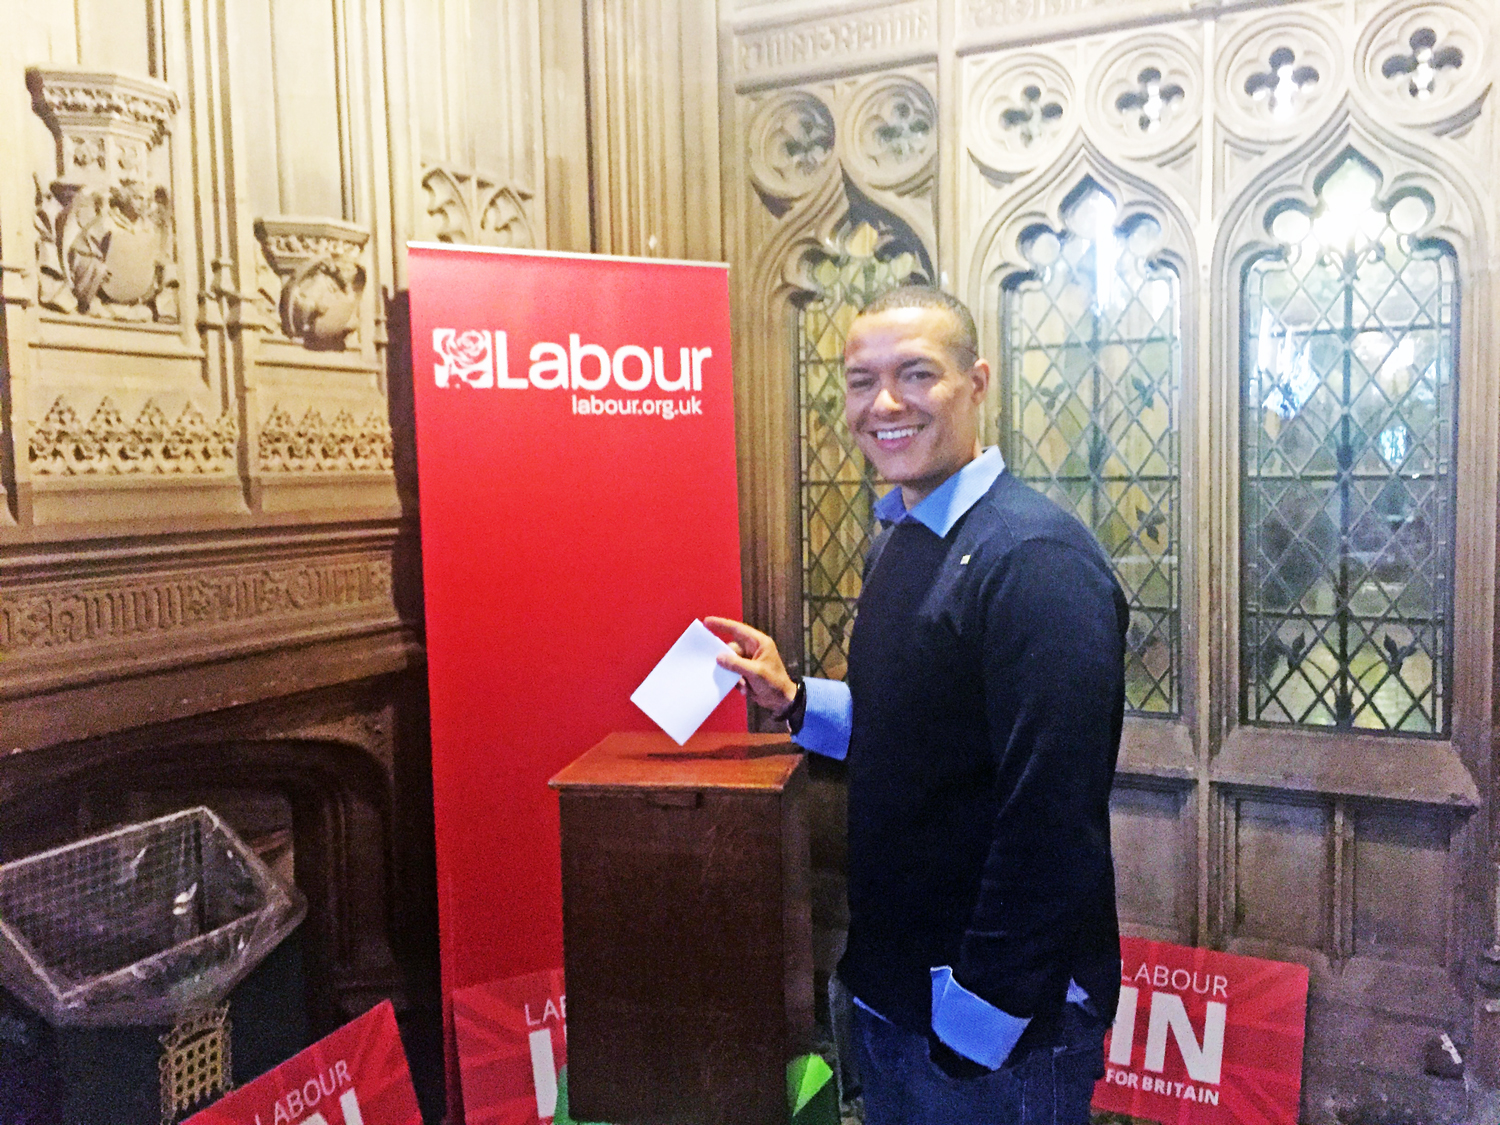 Clive-Lewis-ballot-box-National-Voter-Registration-Drive.jpeg